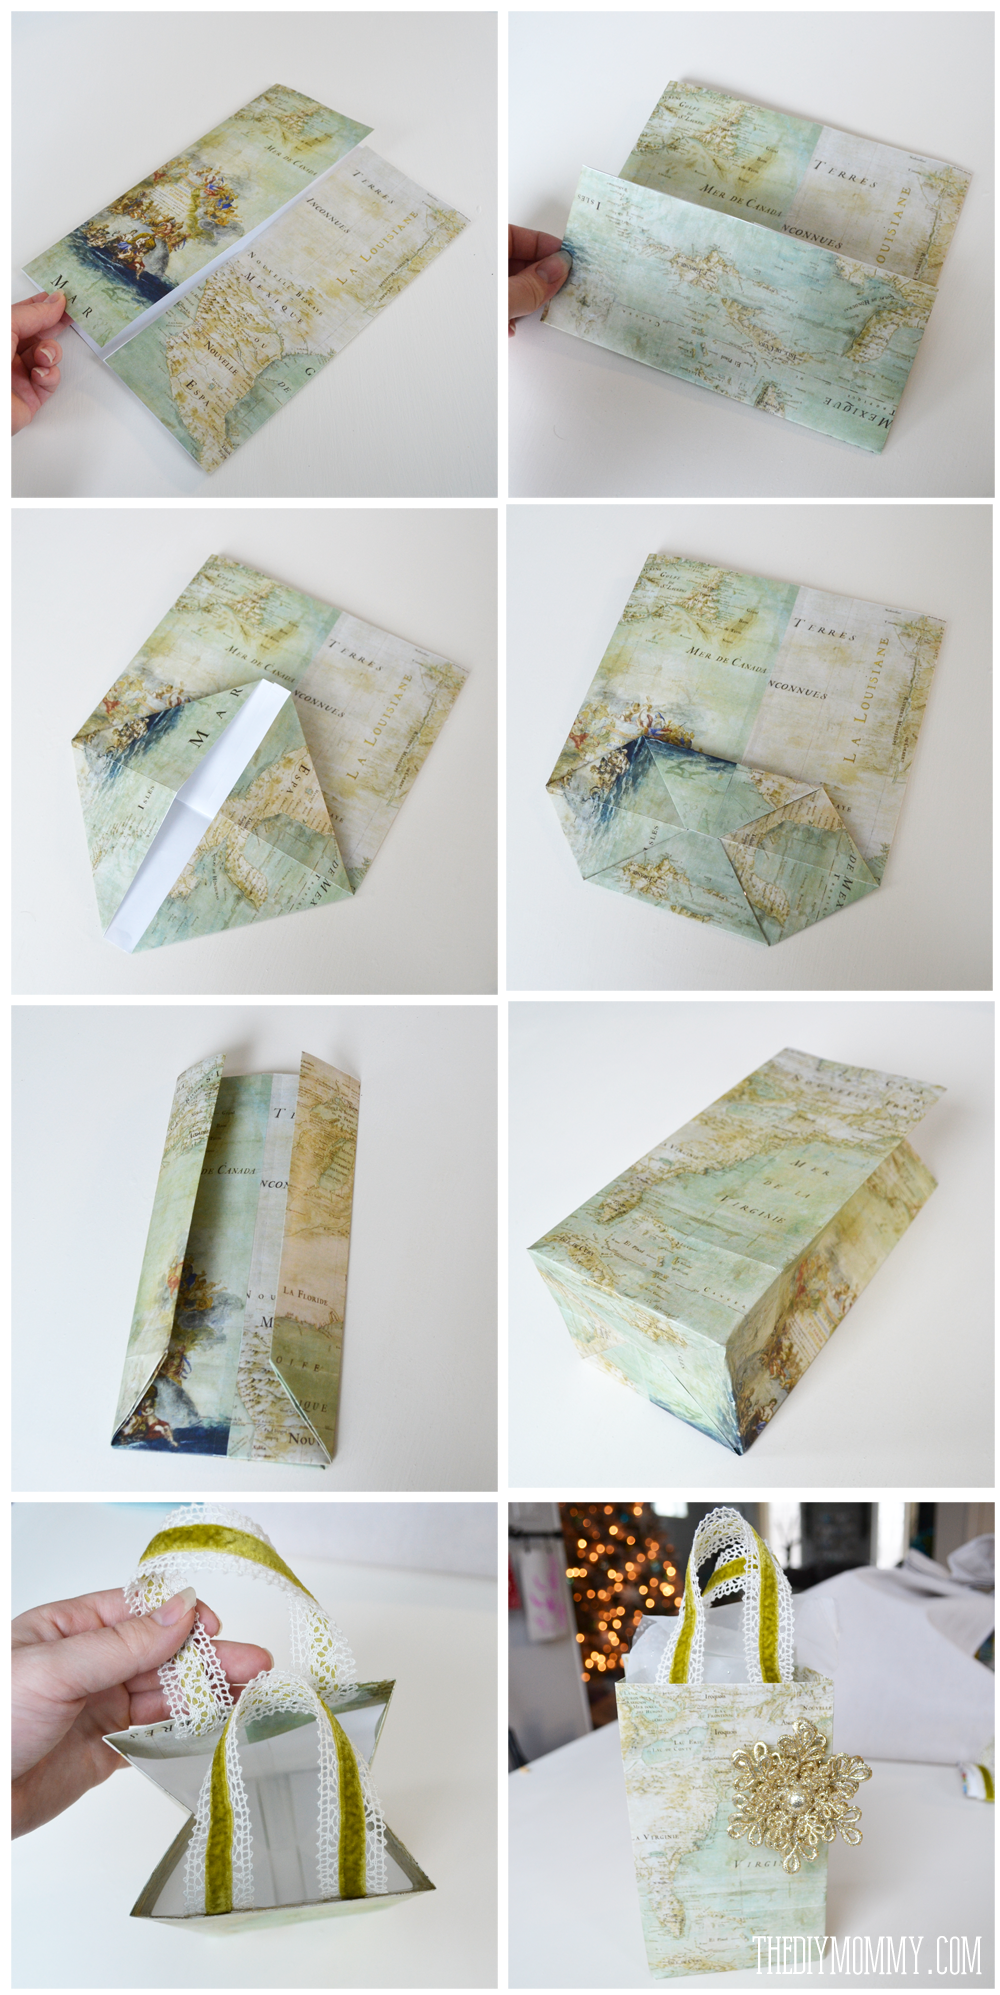 DIY Vintage Map Christmas Gift Wrap and Gift Bags | The DIY Mommy